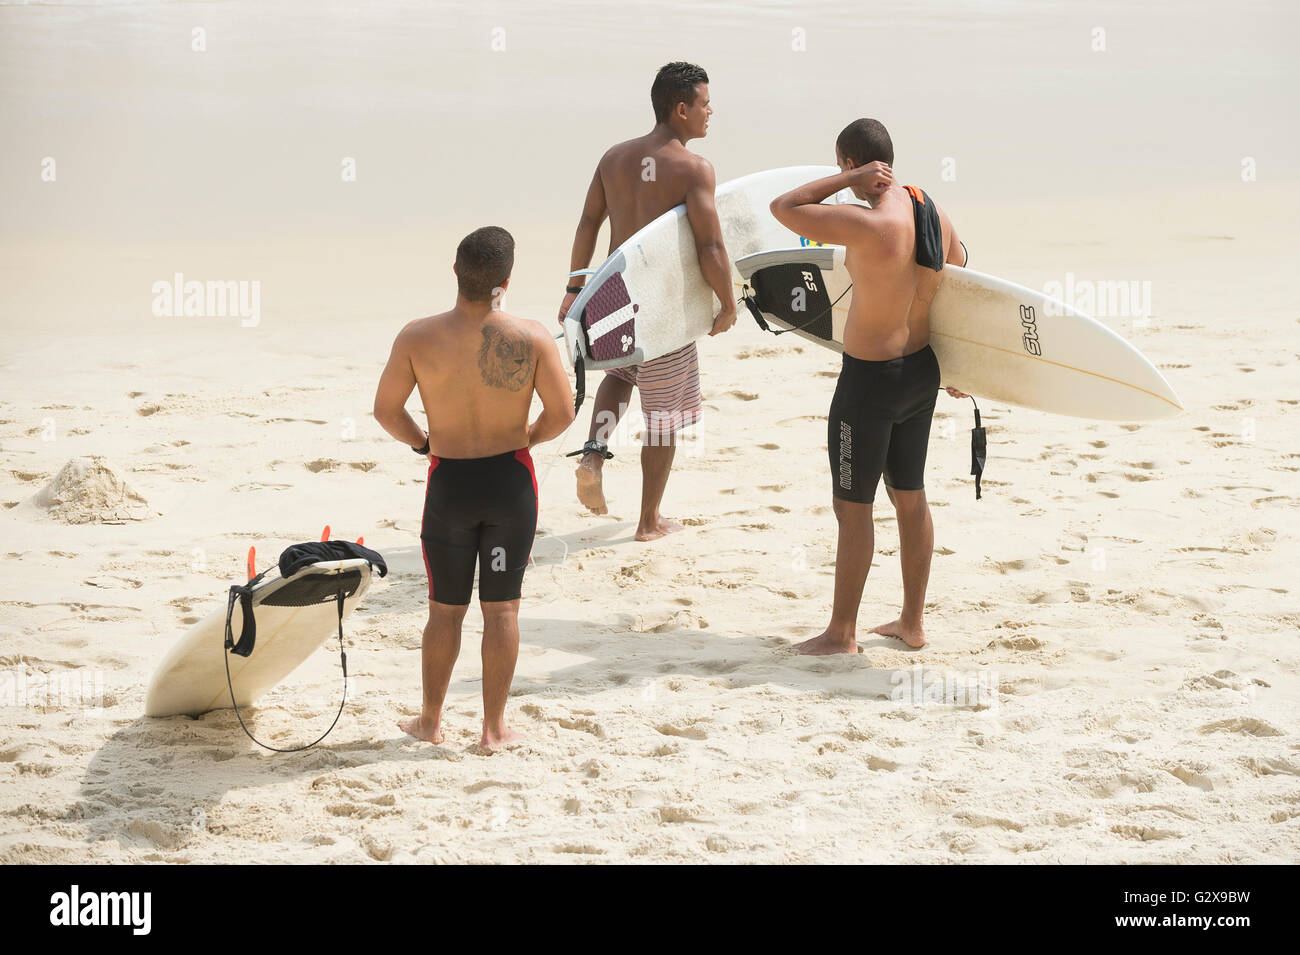 RIO DE JANEIRO - APRIL 3, 2016: Group of young Brazilian carioca surfers stand on Praia do Diabo surf beach at Arpoador. - Stock Image